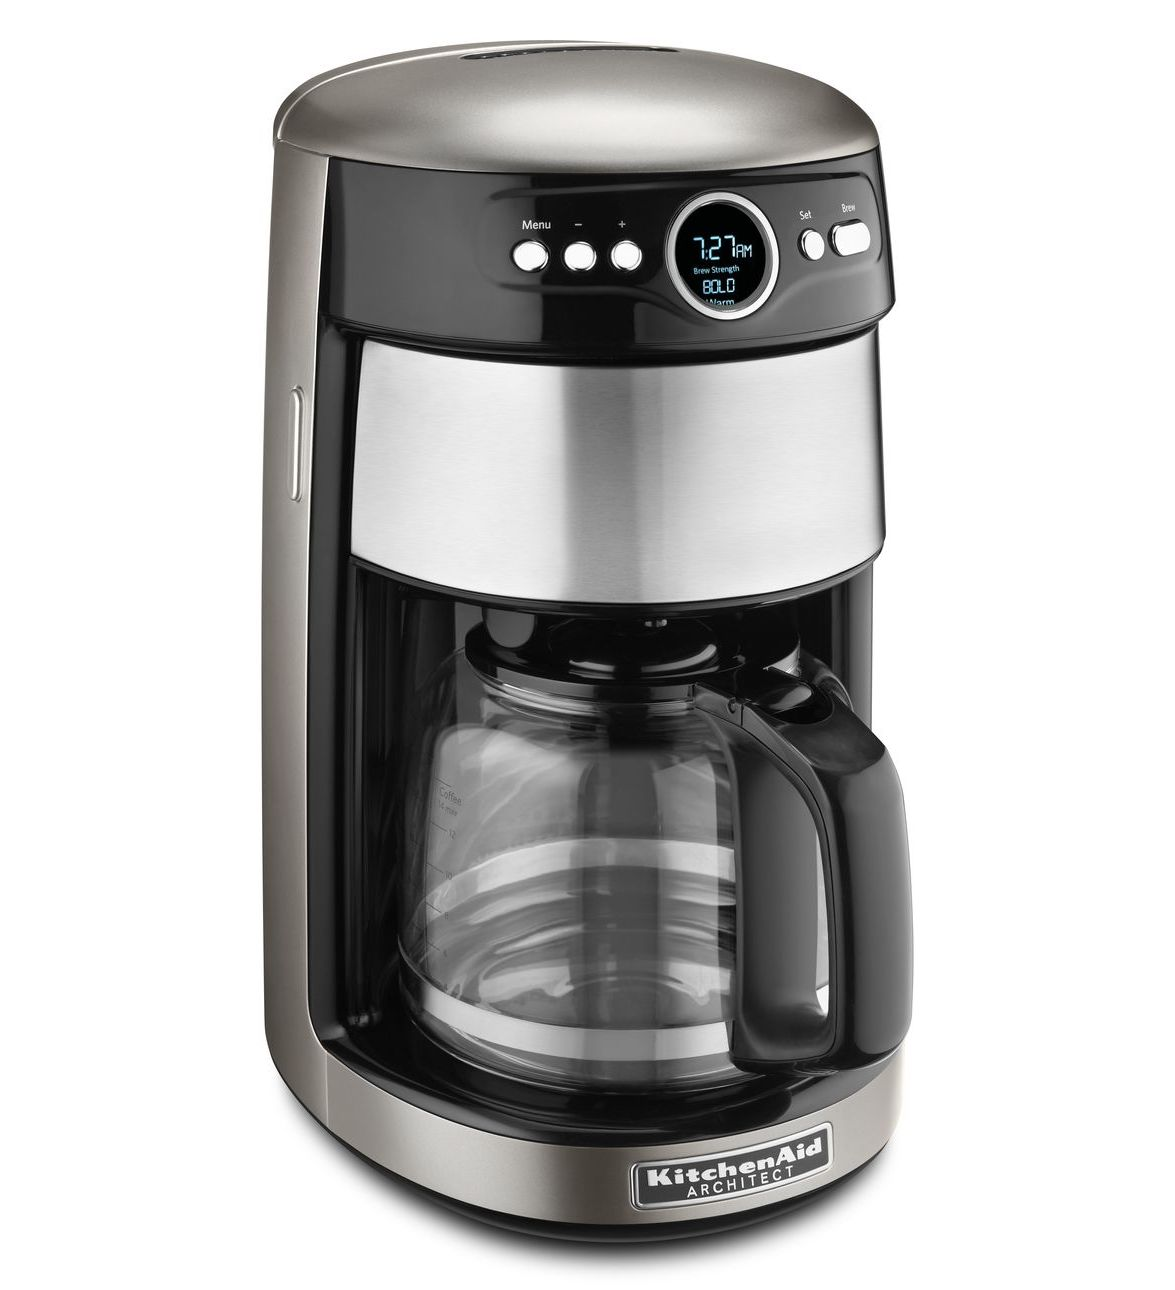 Kitchenaid 14 Cup Glass Carafe Coffee Maker Kcm1402acs